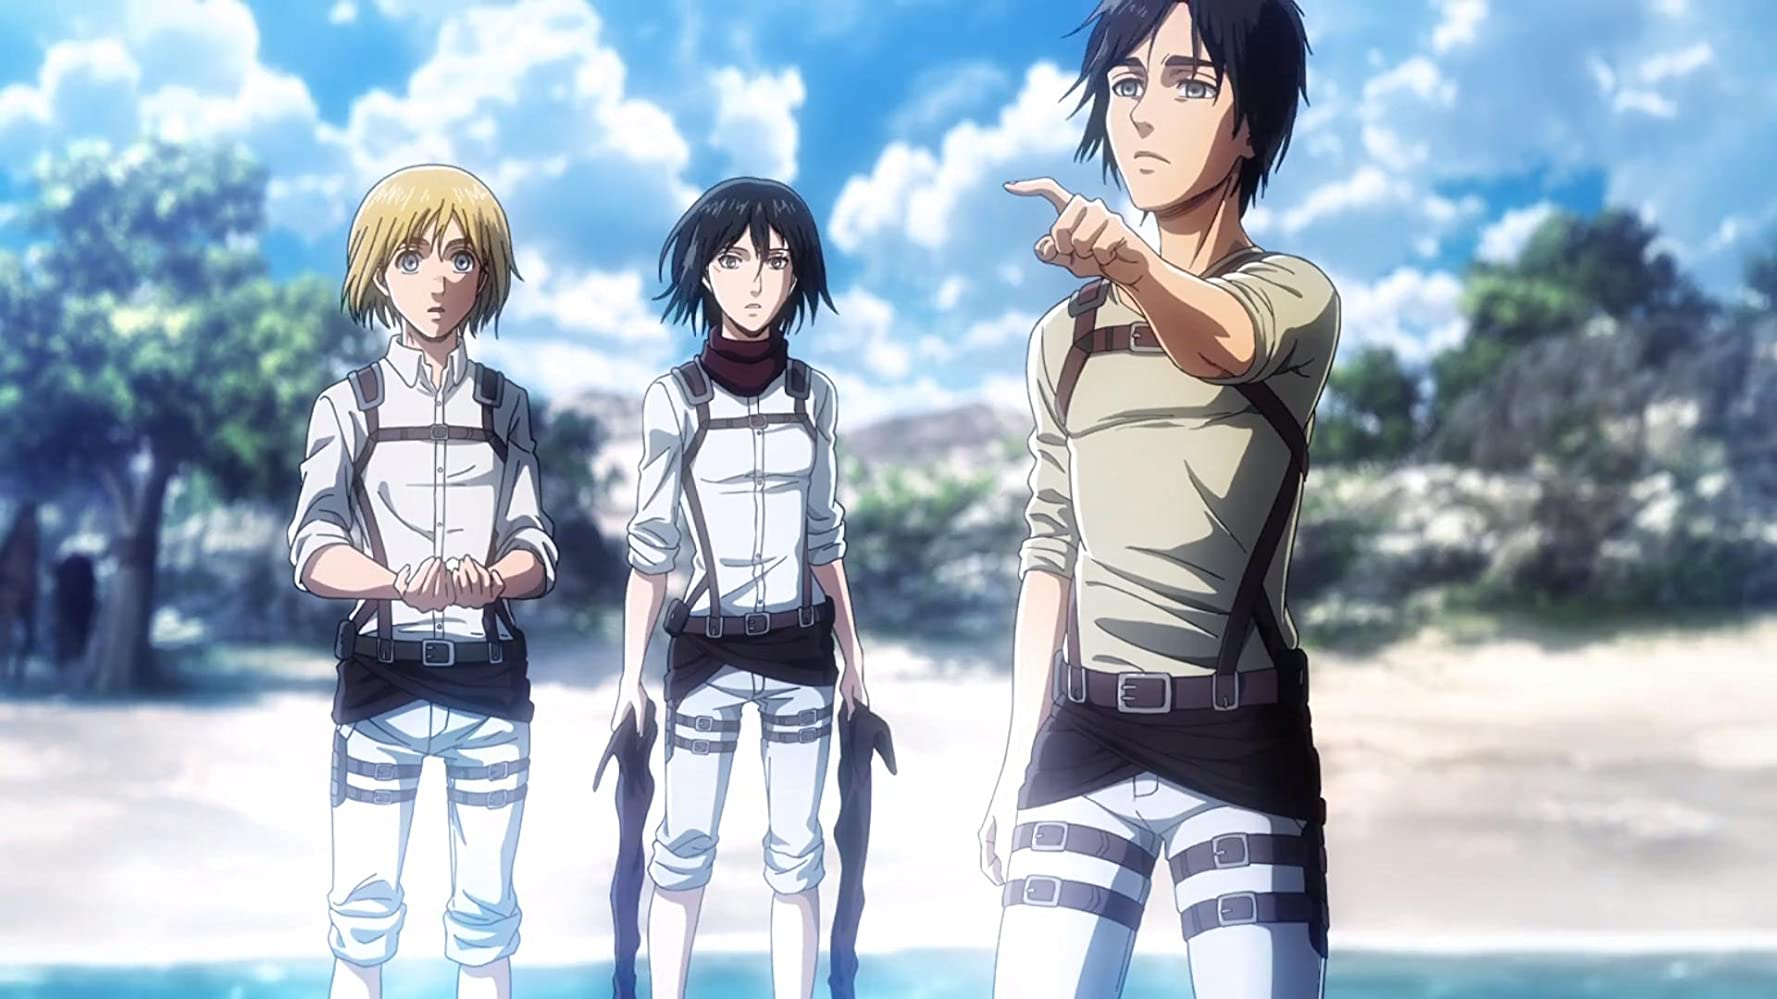 attack on titan upcoming anime